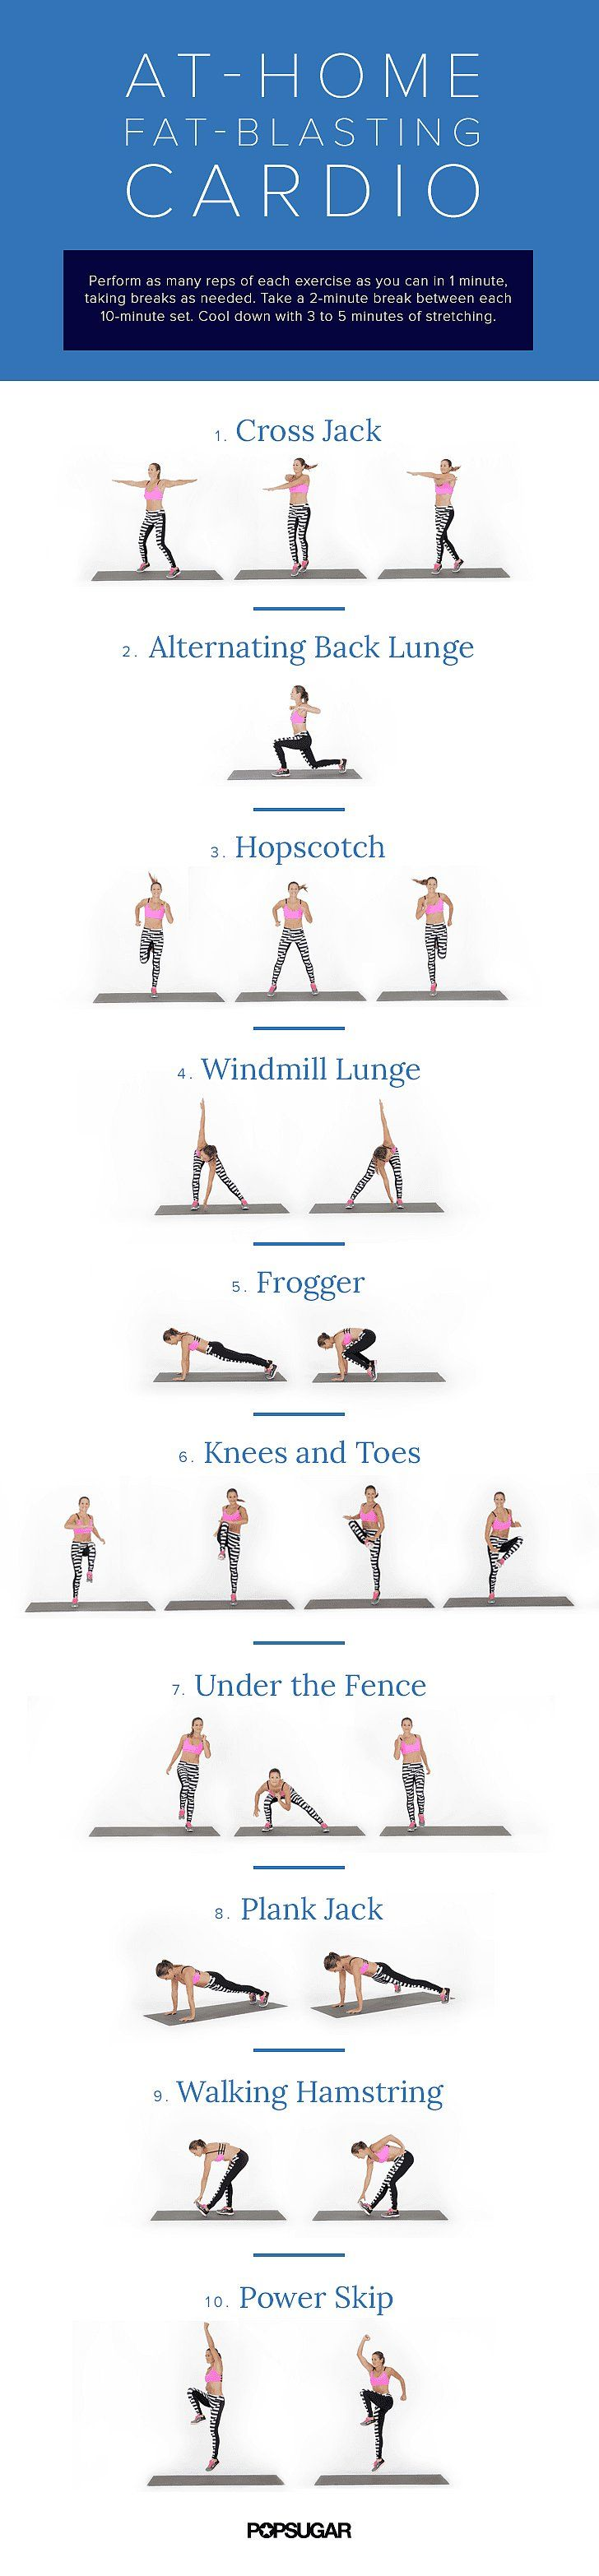 Living Room Workouts to Torch Calories at Home | Pinterest | Living ...